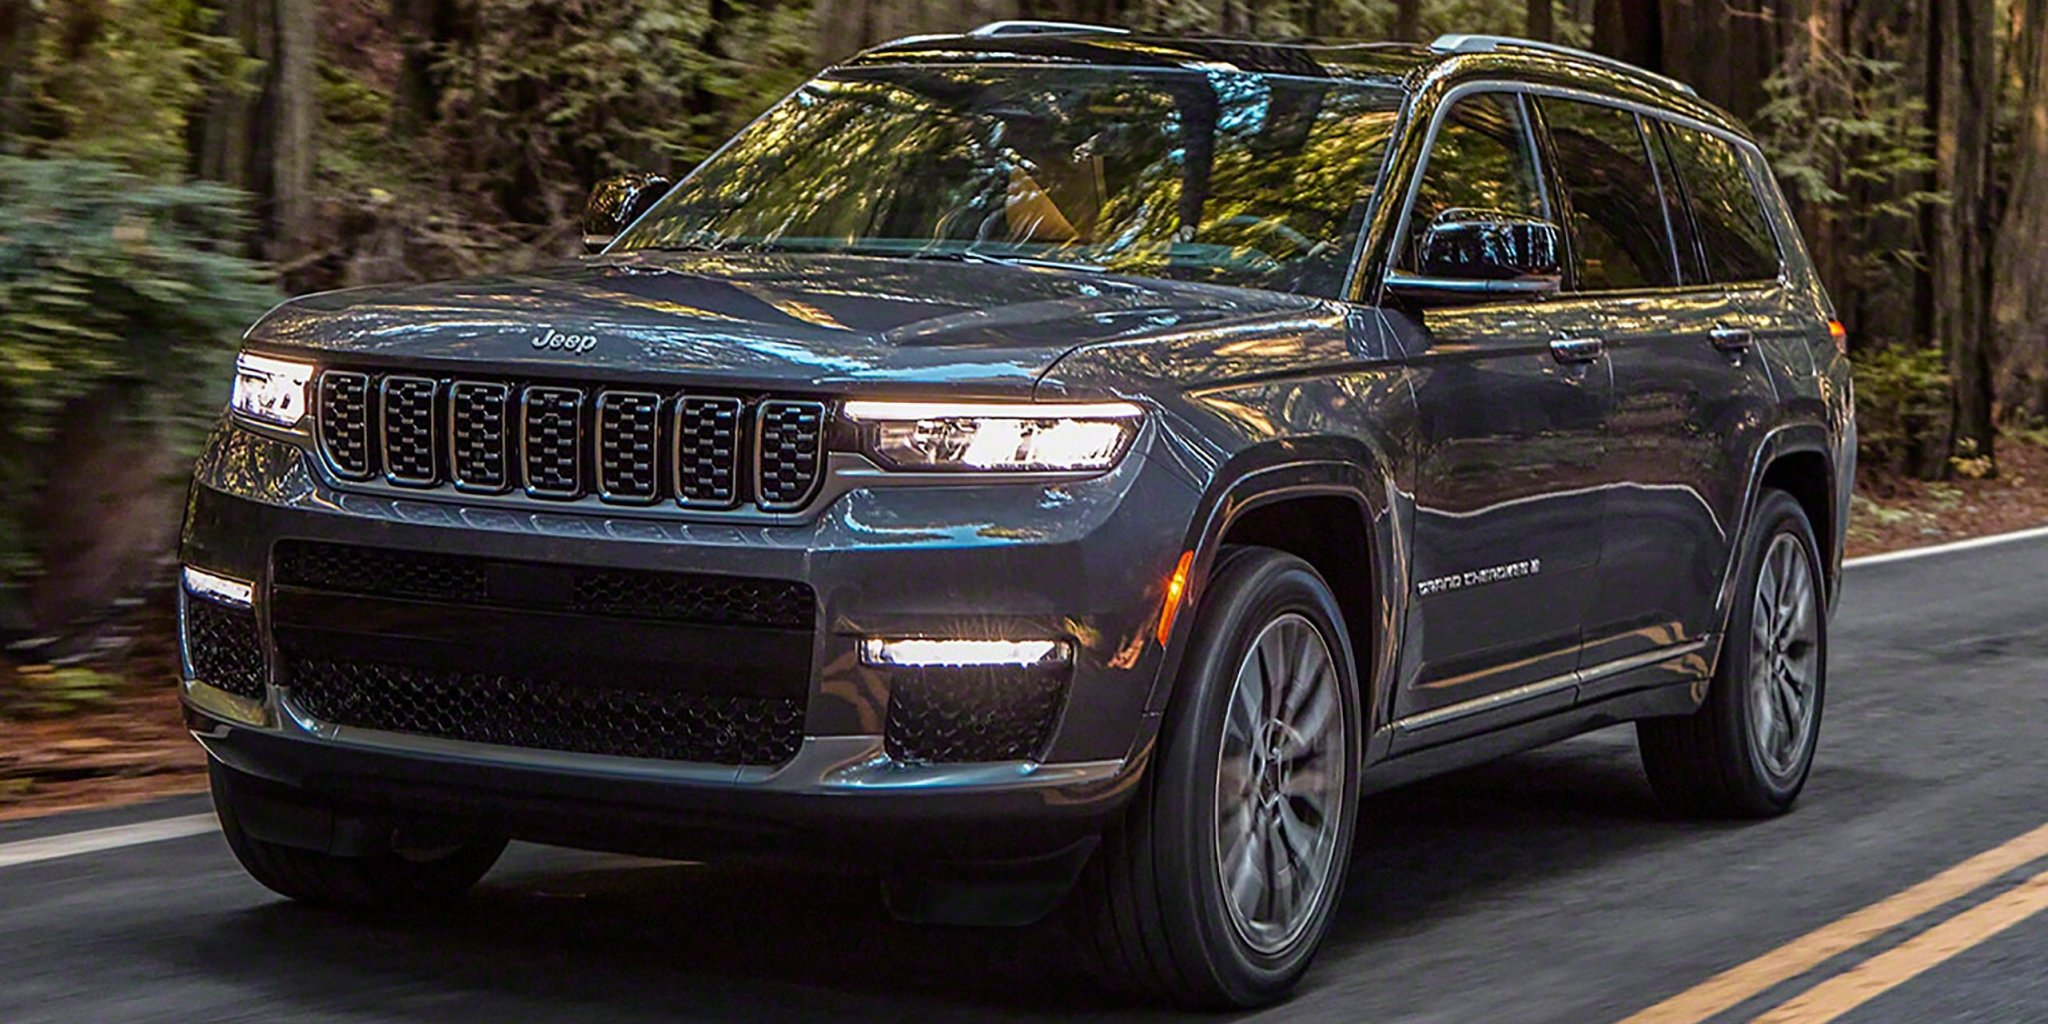 These SUVs Have The Sickest Front Grille Designs